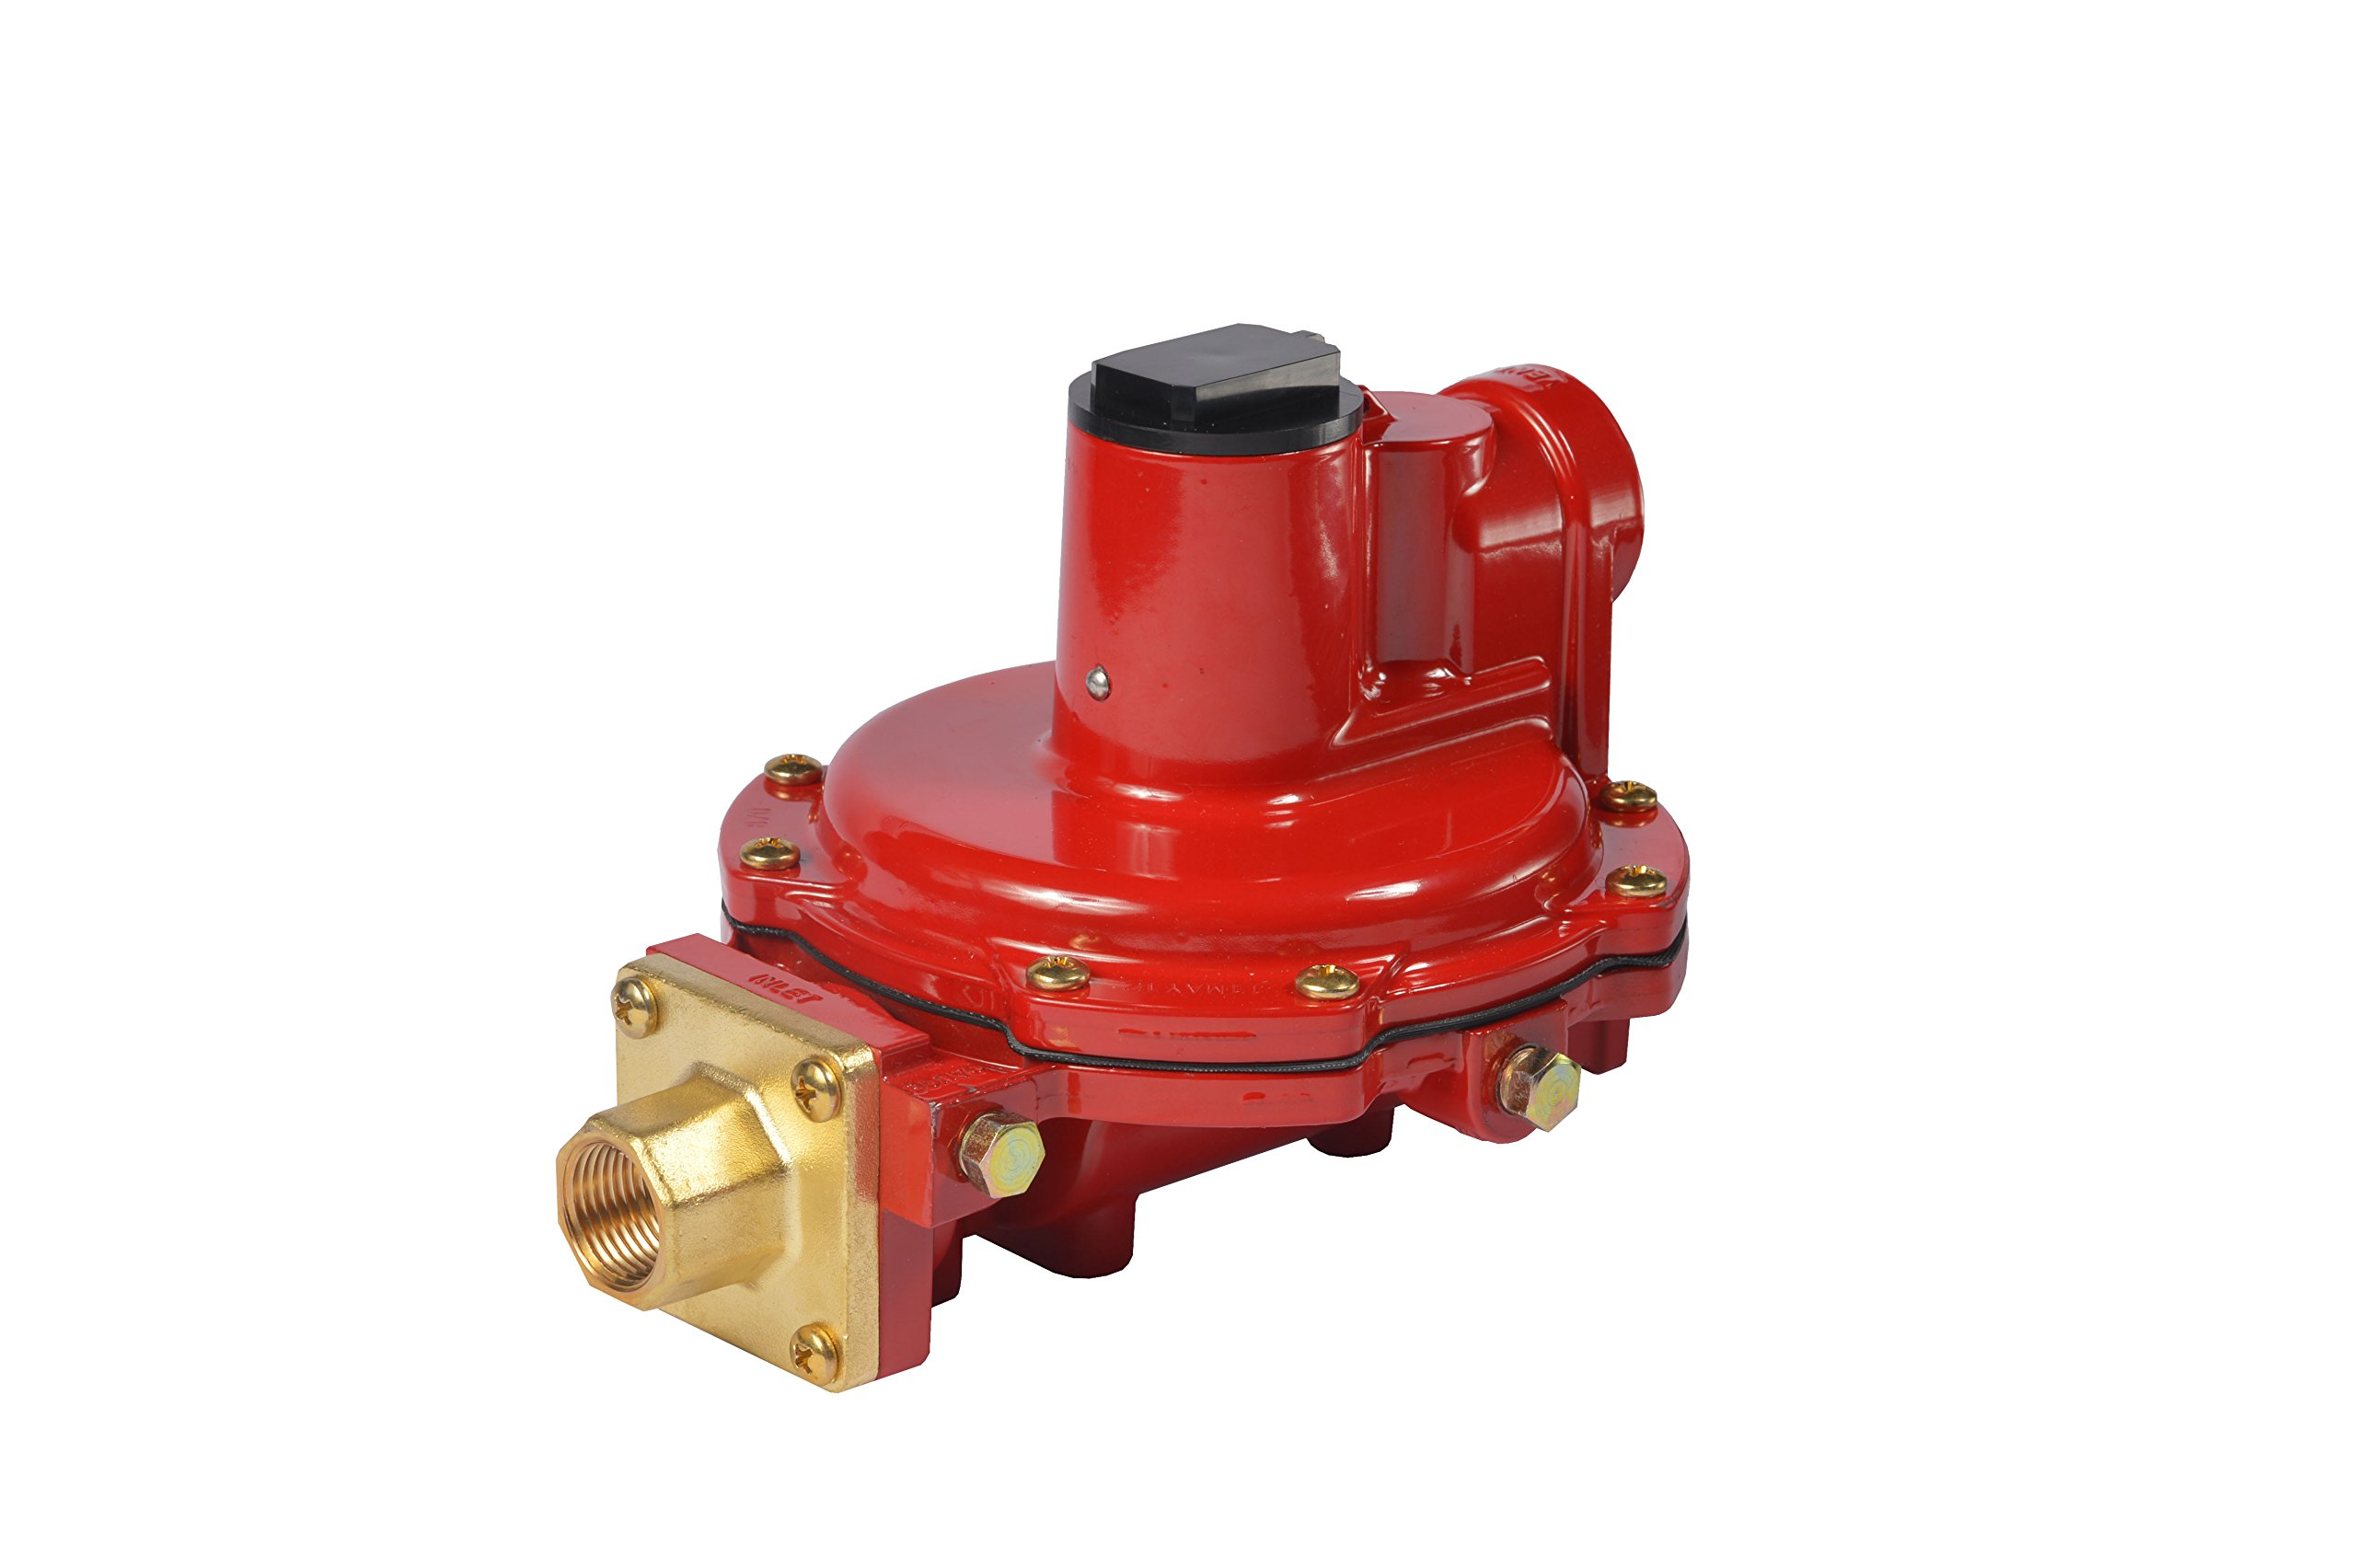 Emerson-Fisher LP-Gas Equipment R622H-HGJ First Stage Regulator, 8-12 psig Spring, POL x 1/2'' NPT by Emerson-Fisher LP-Gas Equipment (Image #1)